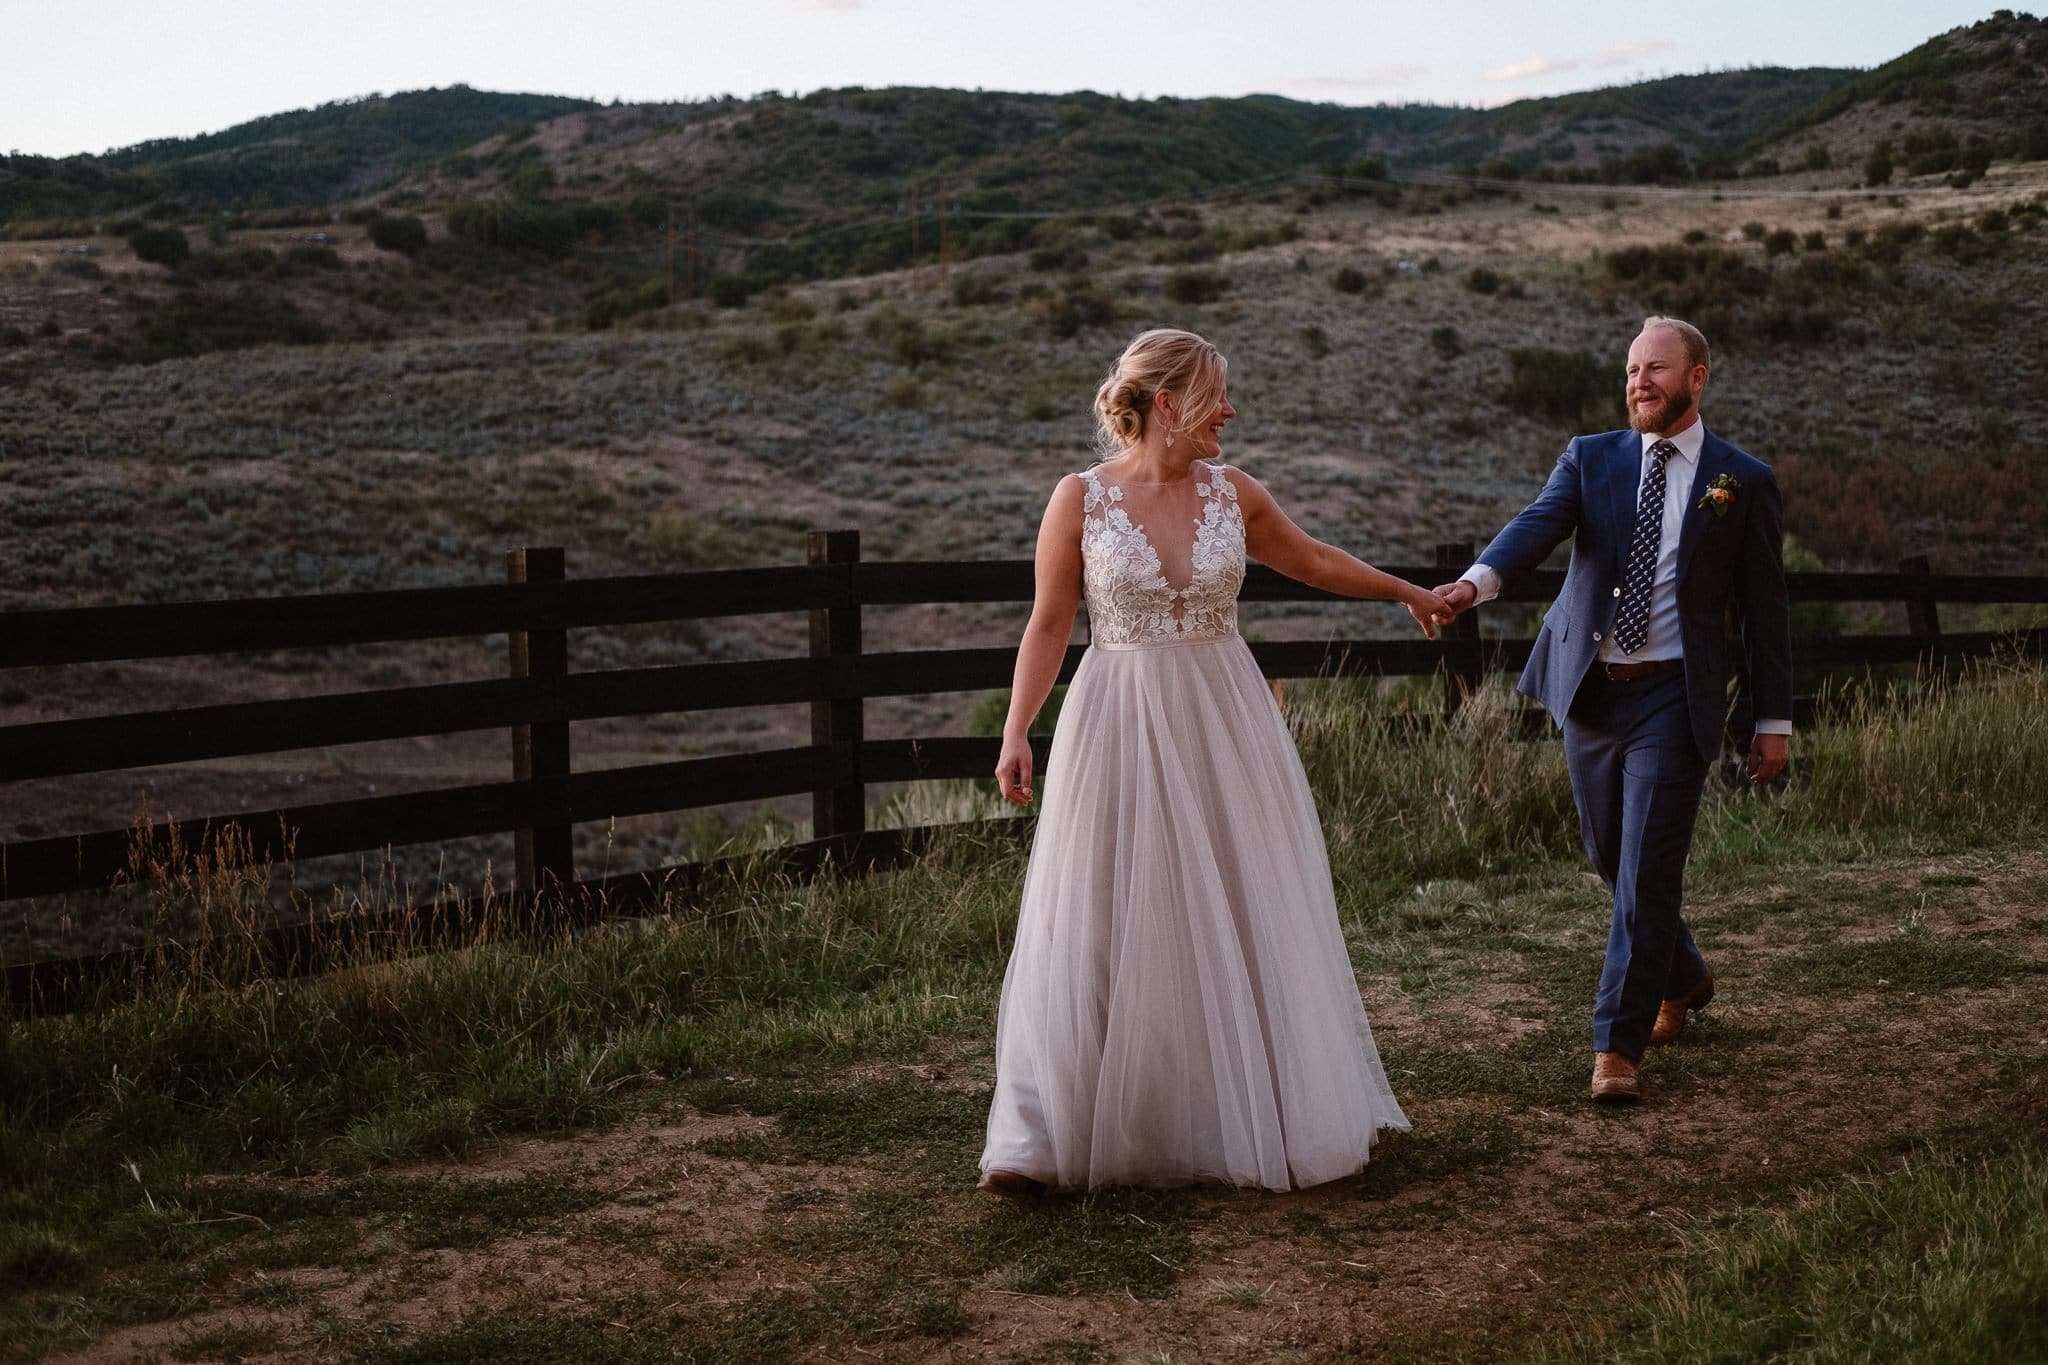 Steamboat Springs wedding photographer, La Joya Dulce wedding, Colorado ranch wedding venues, bride and groom portraits at sunset, blue hour wedding photography